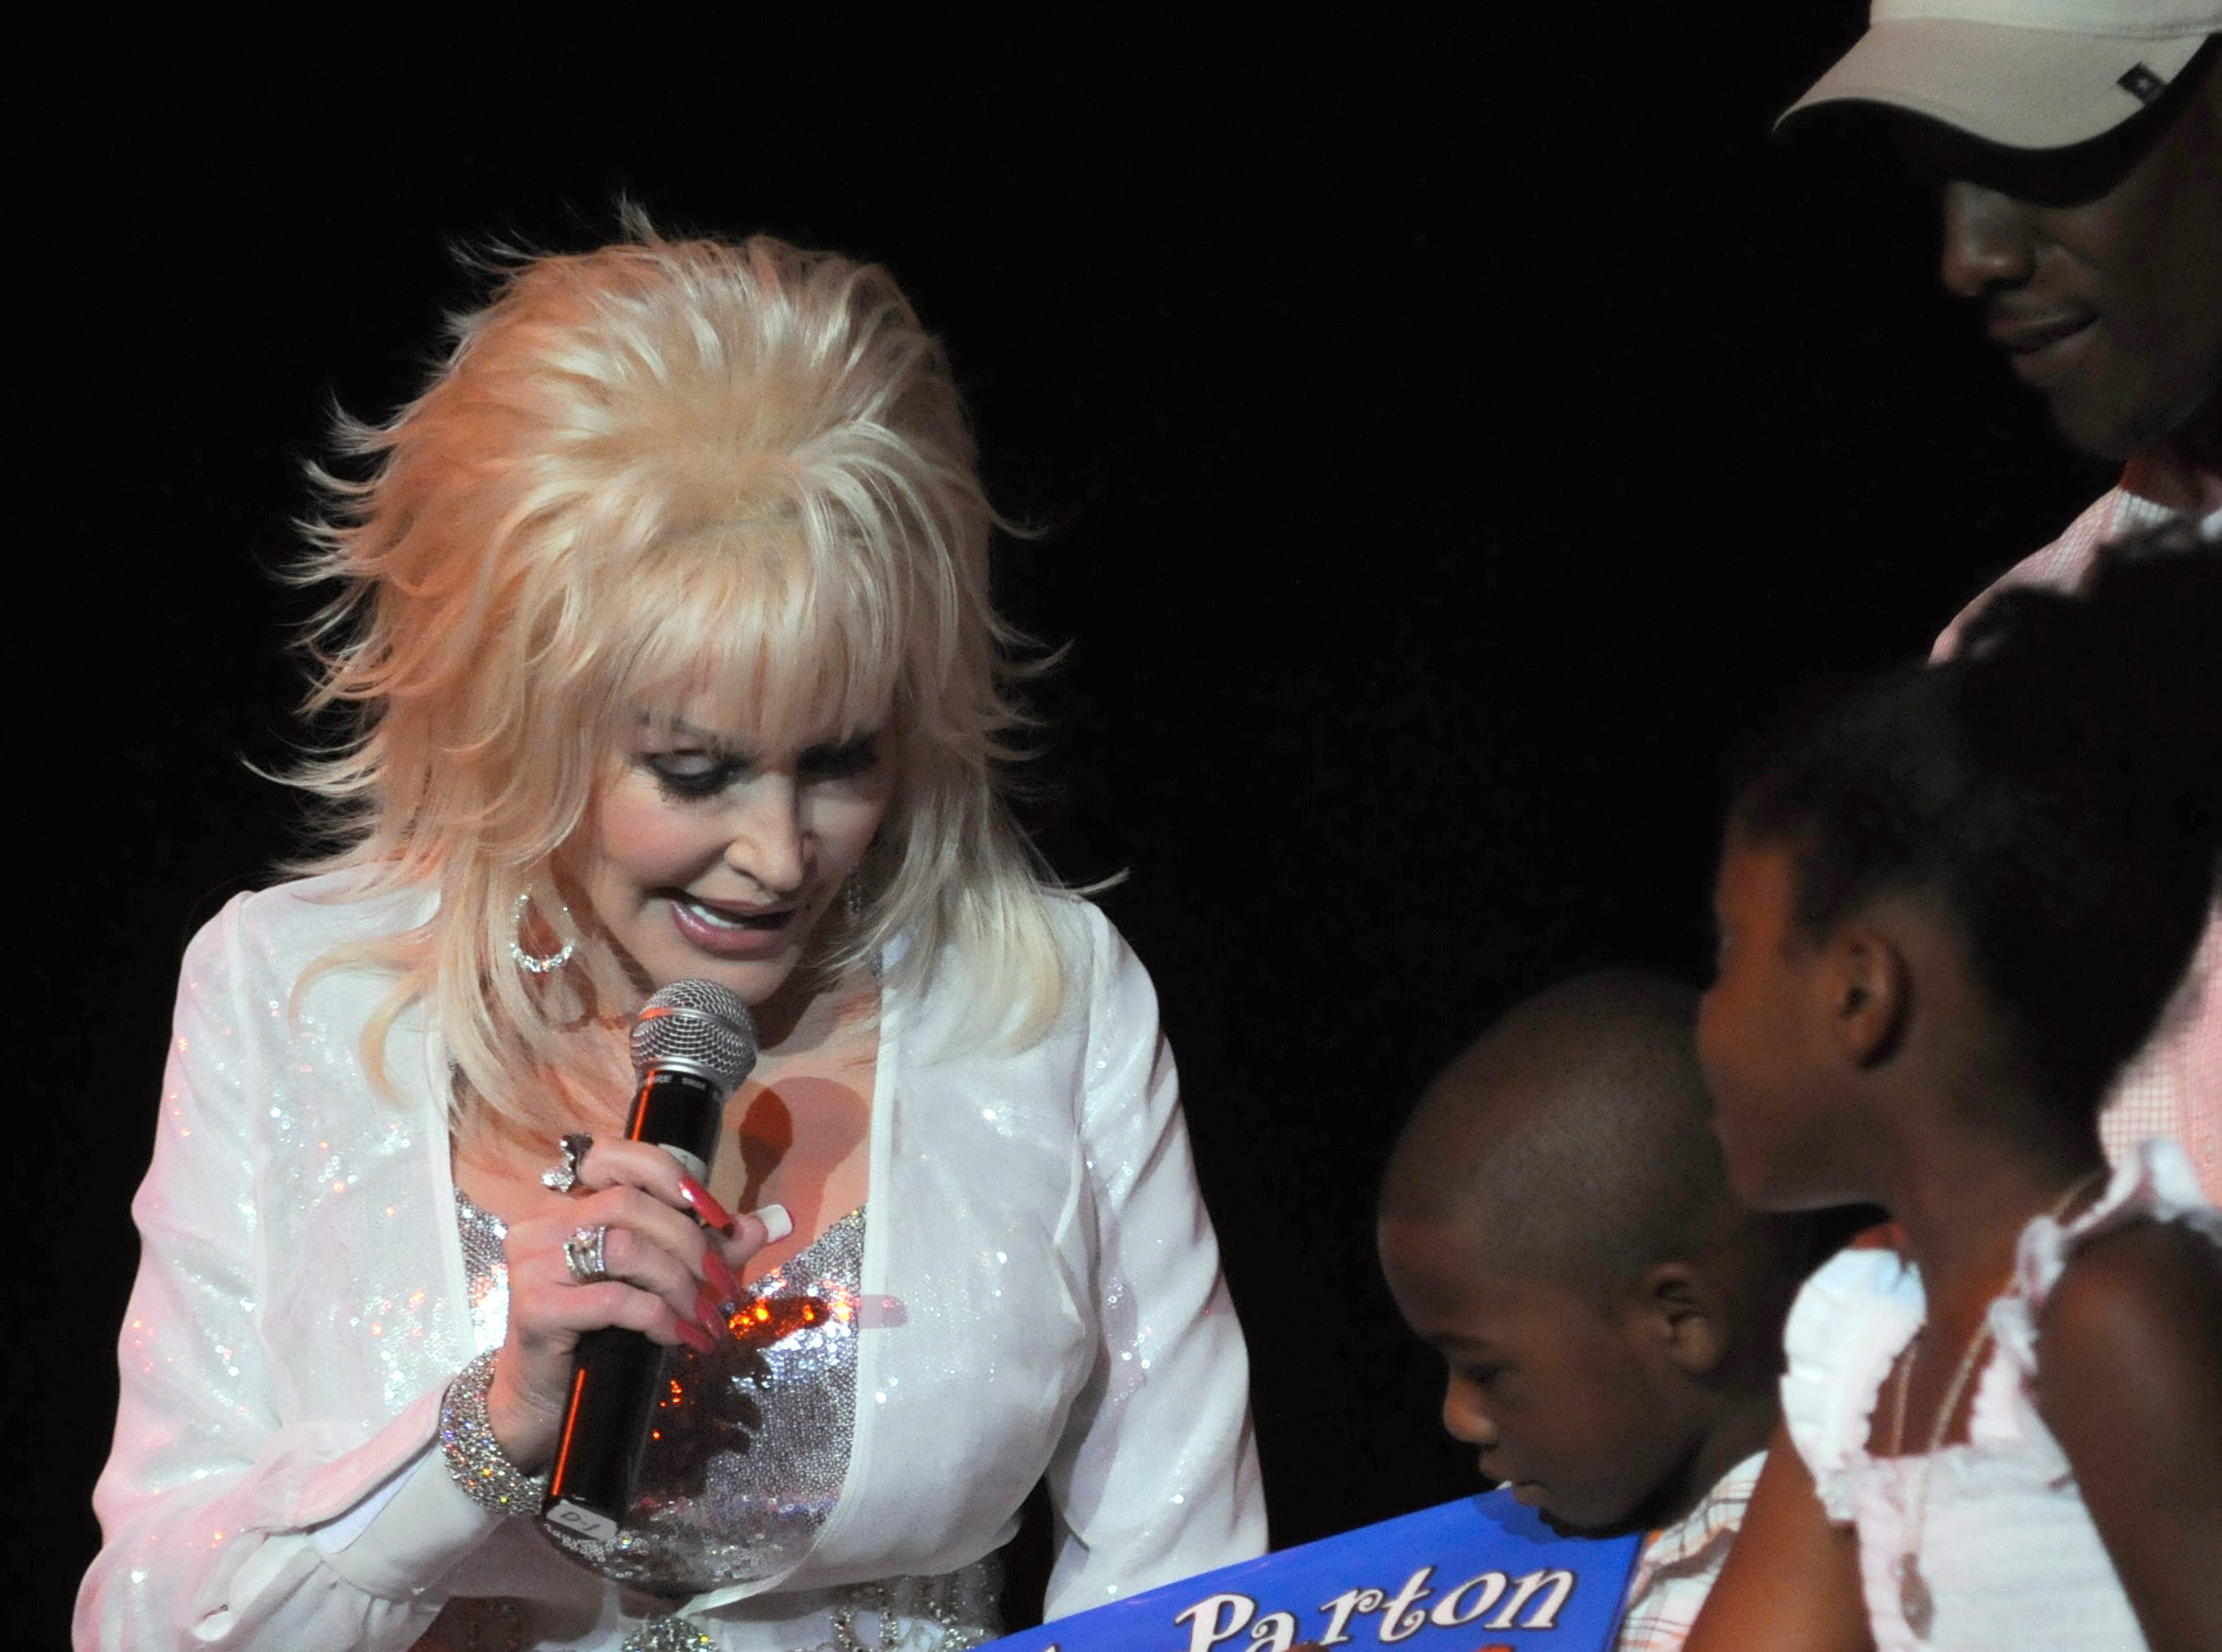 Dolly Parton presents the 25th million Imagination Library to book to Kumar and Shinera Stewart, from Birminham, Ala., on June 11, 2010 at Dollywood.